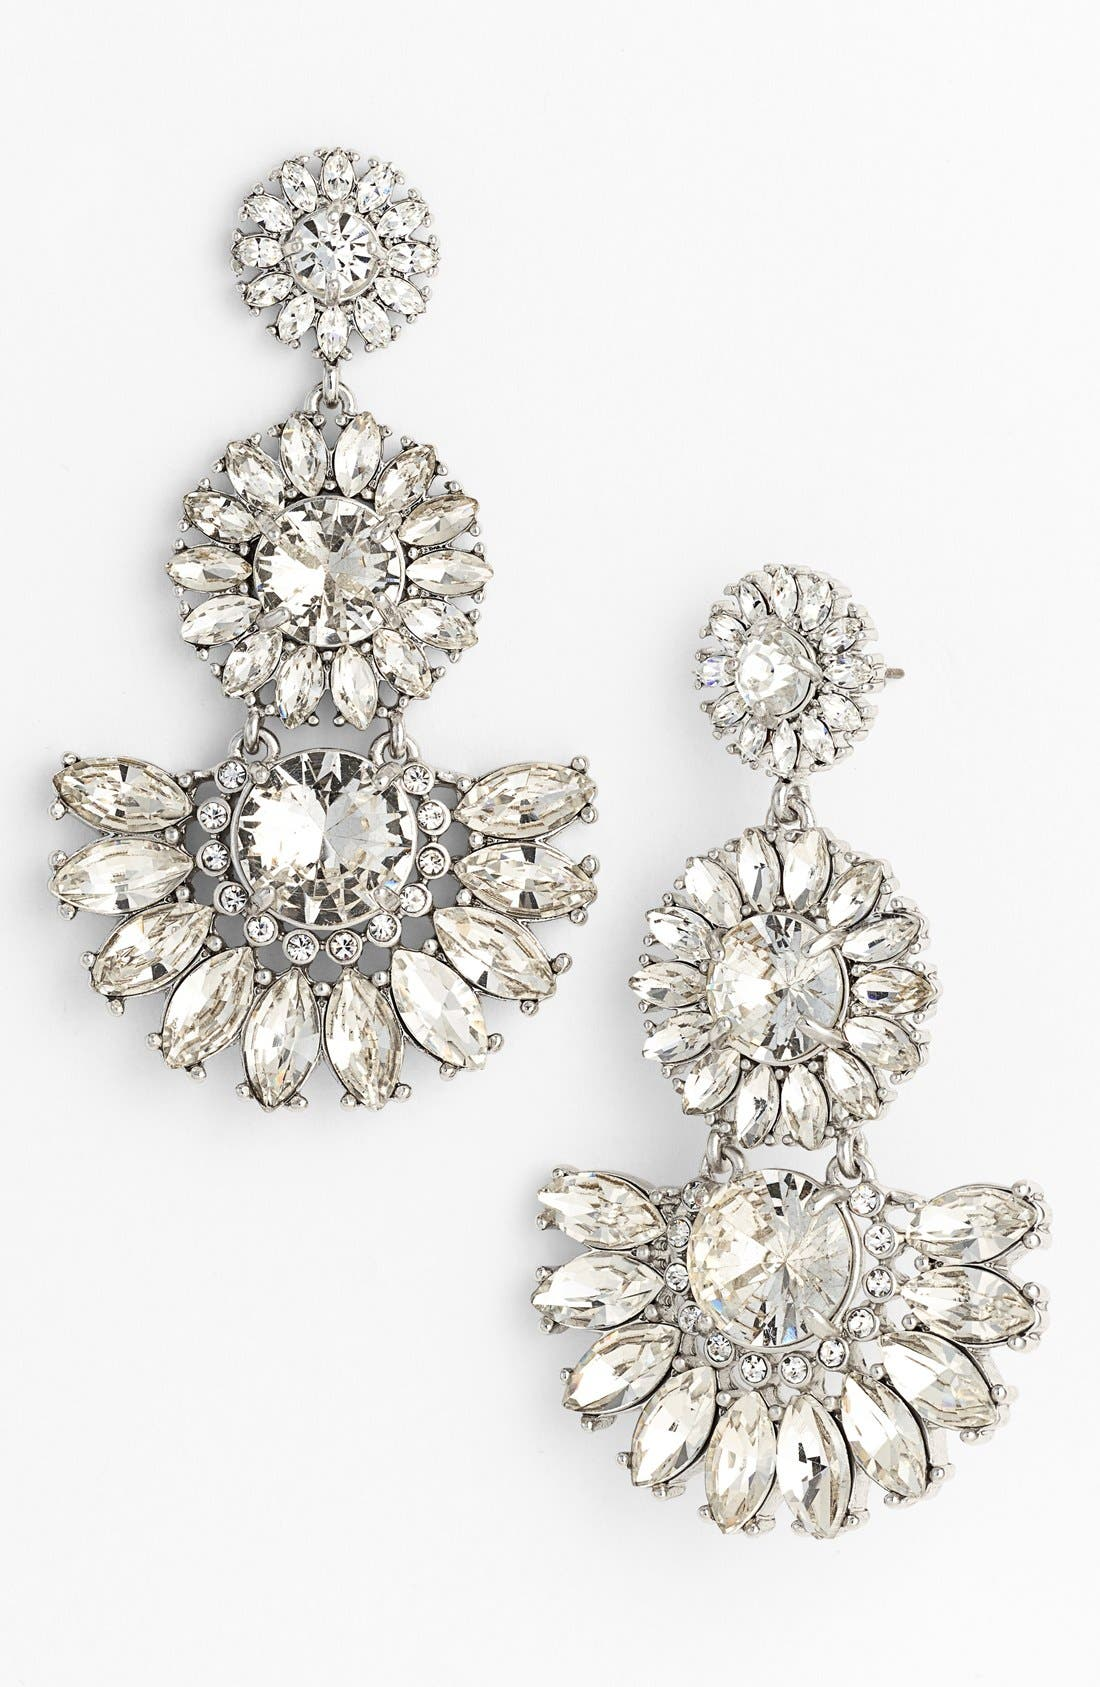 Main Image - kate spade new york 'estate garden' crystal drop earrings